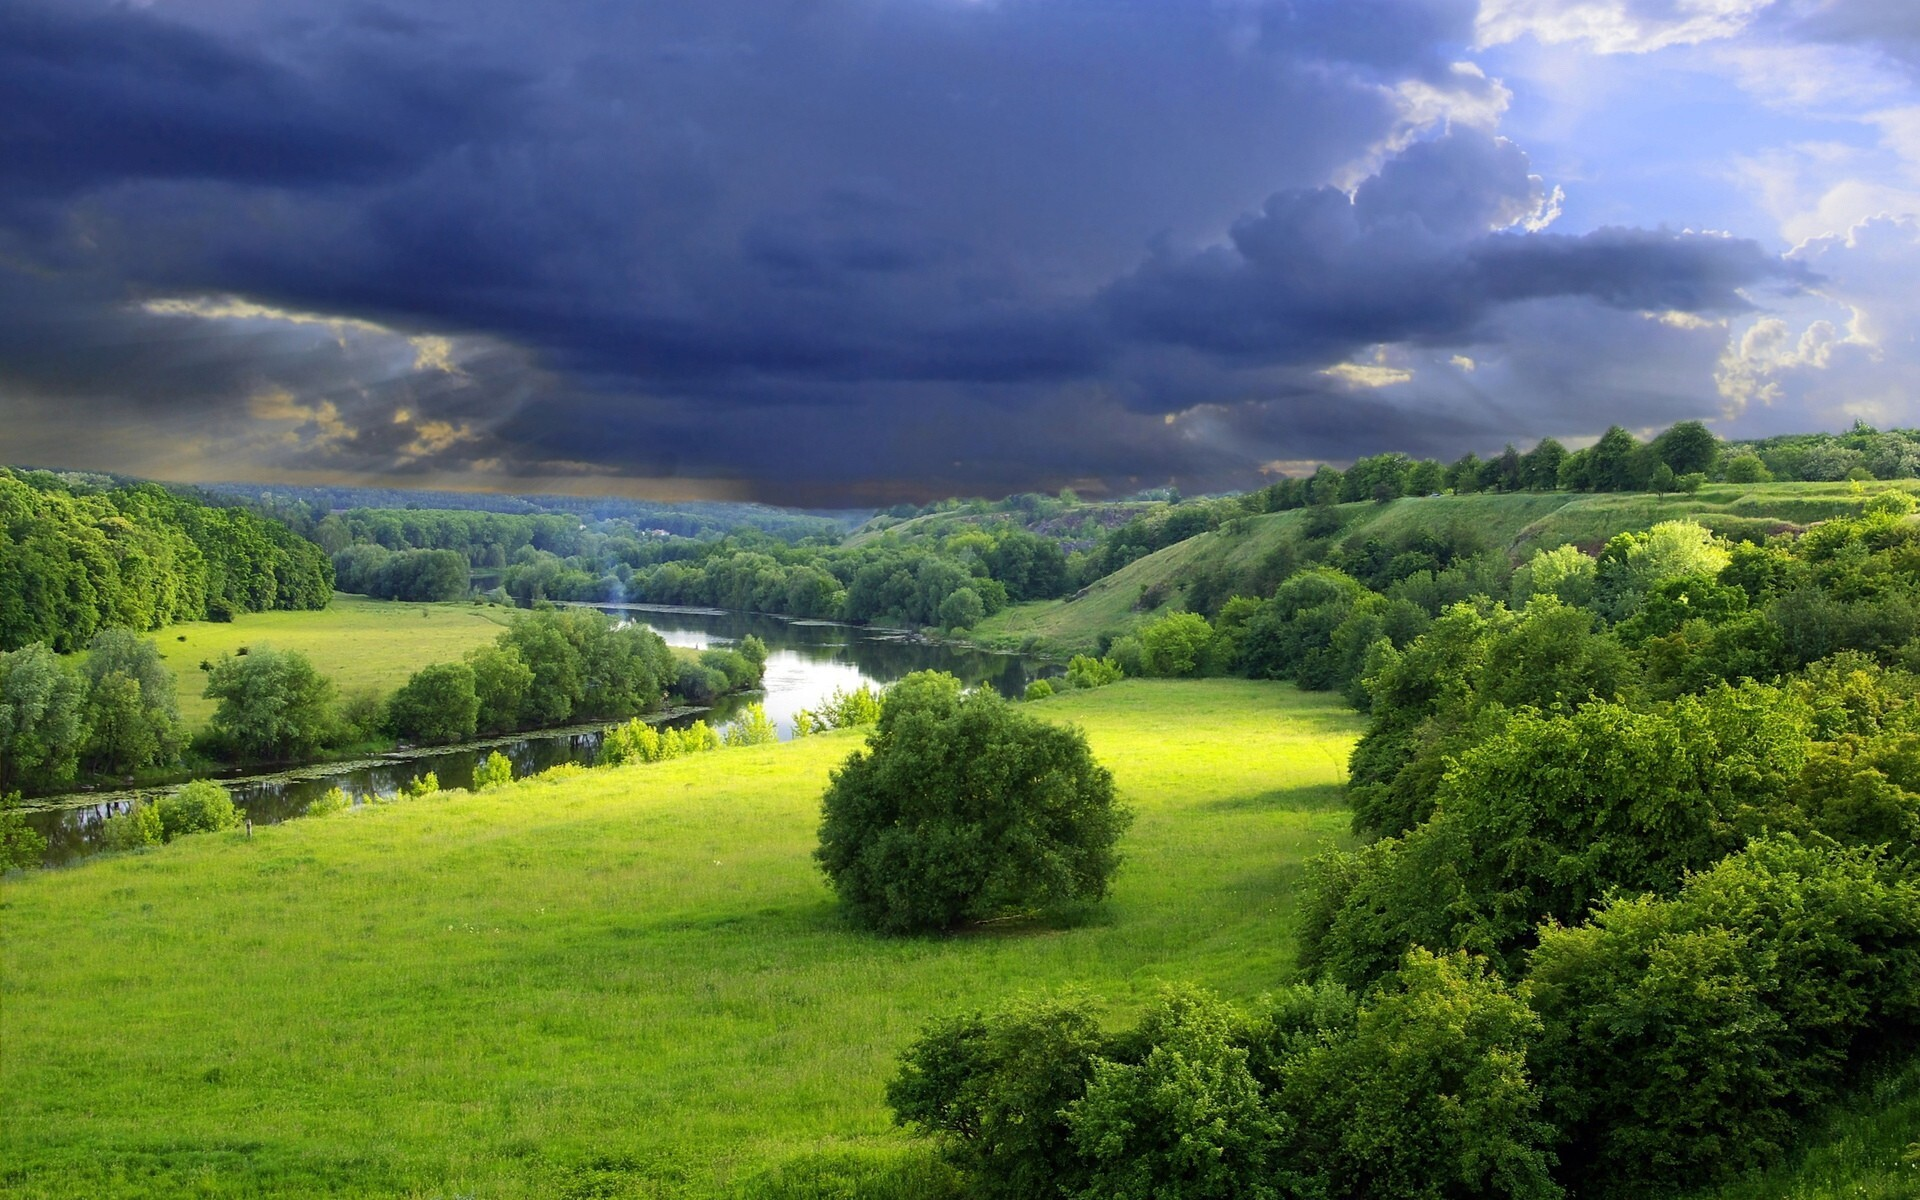 Amazing Green Nature Landscape Image Download  HD Wallpapers